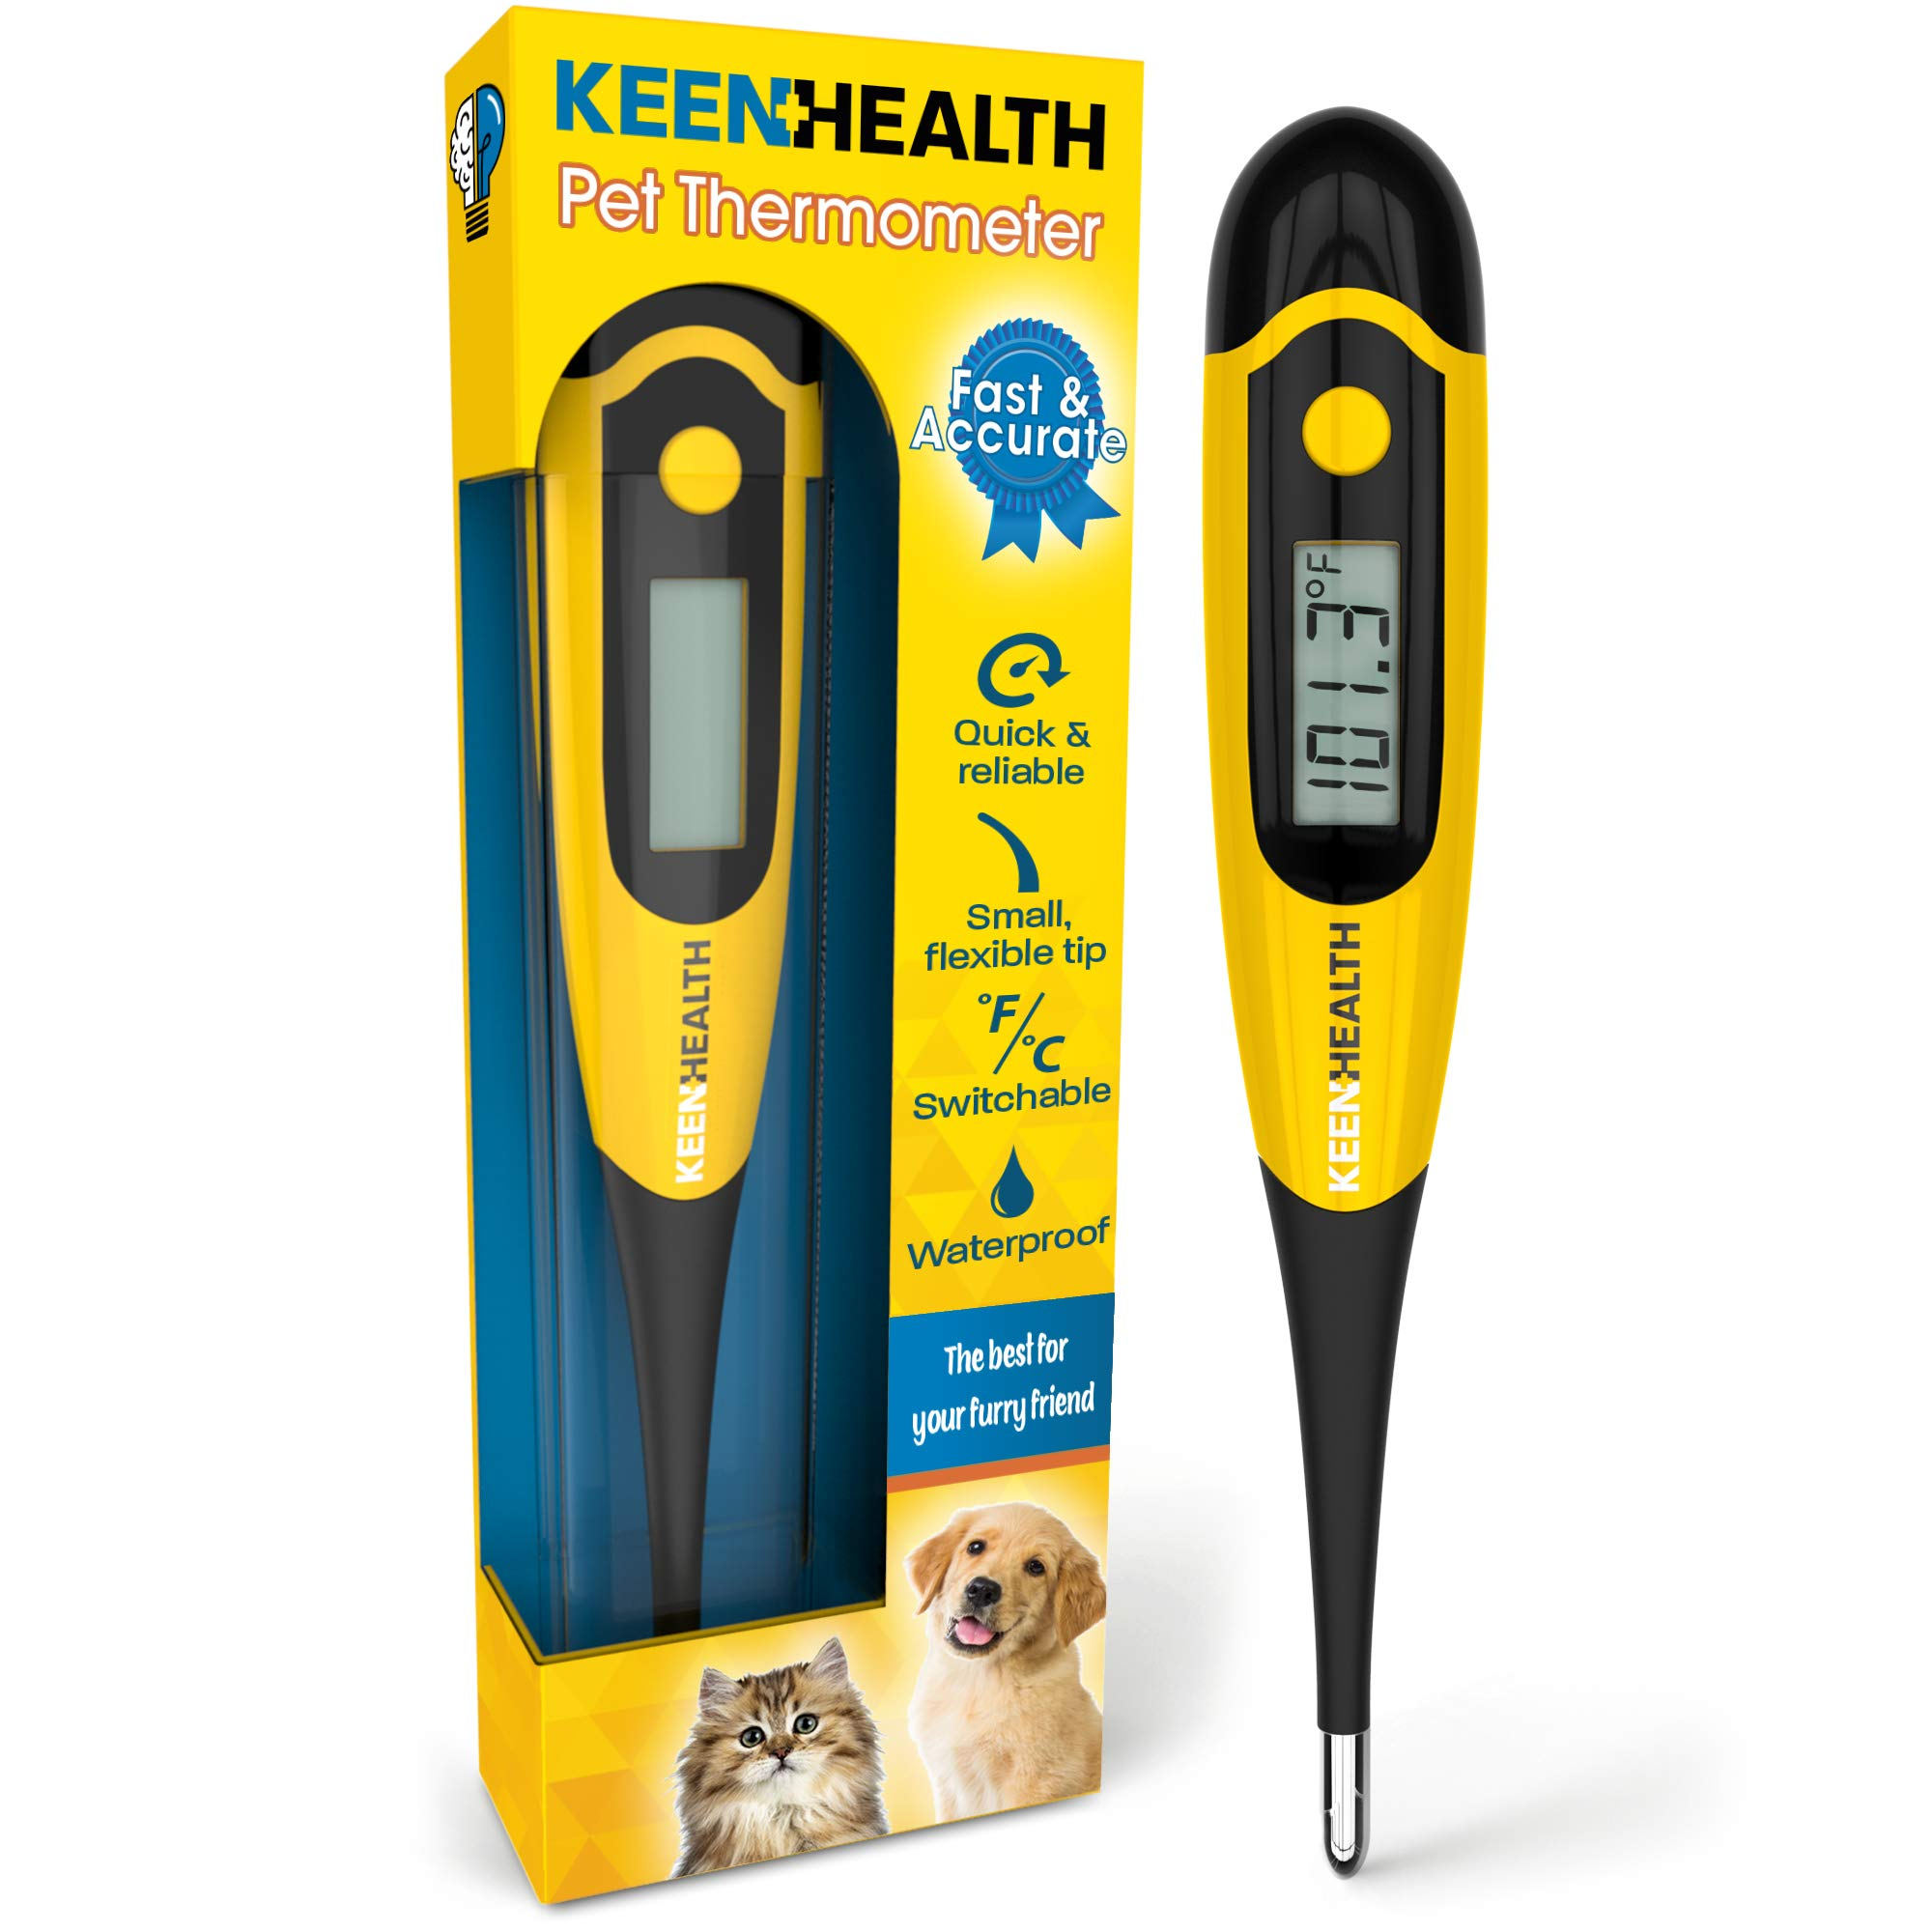 Keenhealth Digital Pet Thermometer for Rectal Use - Dogs, Cats, and Other Small Pets - Dog Thermometer - Fast and Accurate - Waterproof for Hygienic Cleaning - Cat Thermometer Pet Thermometer by Keenhealth